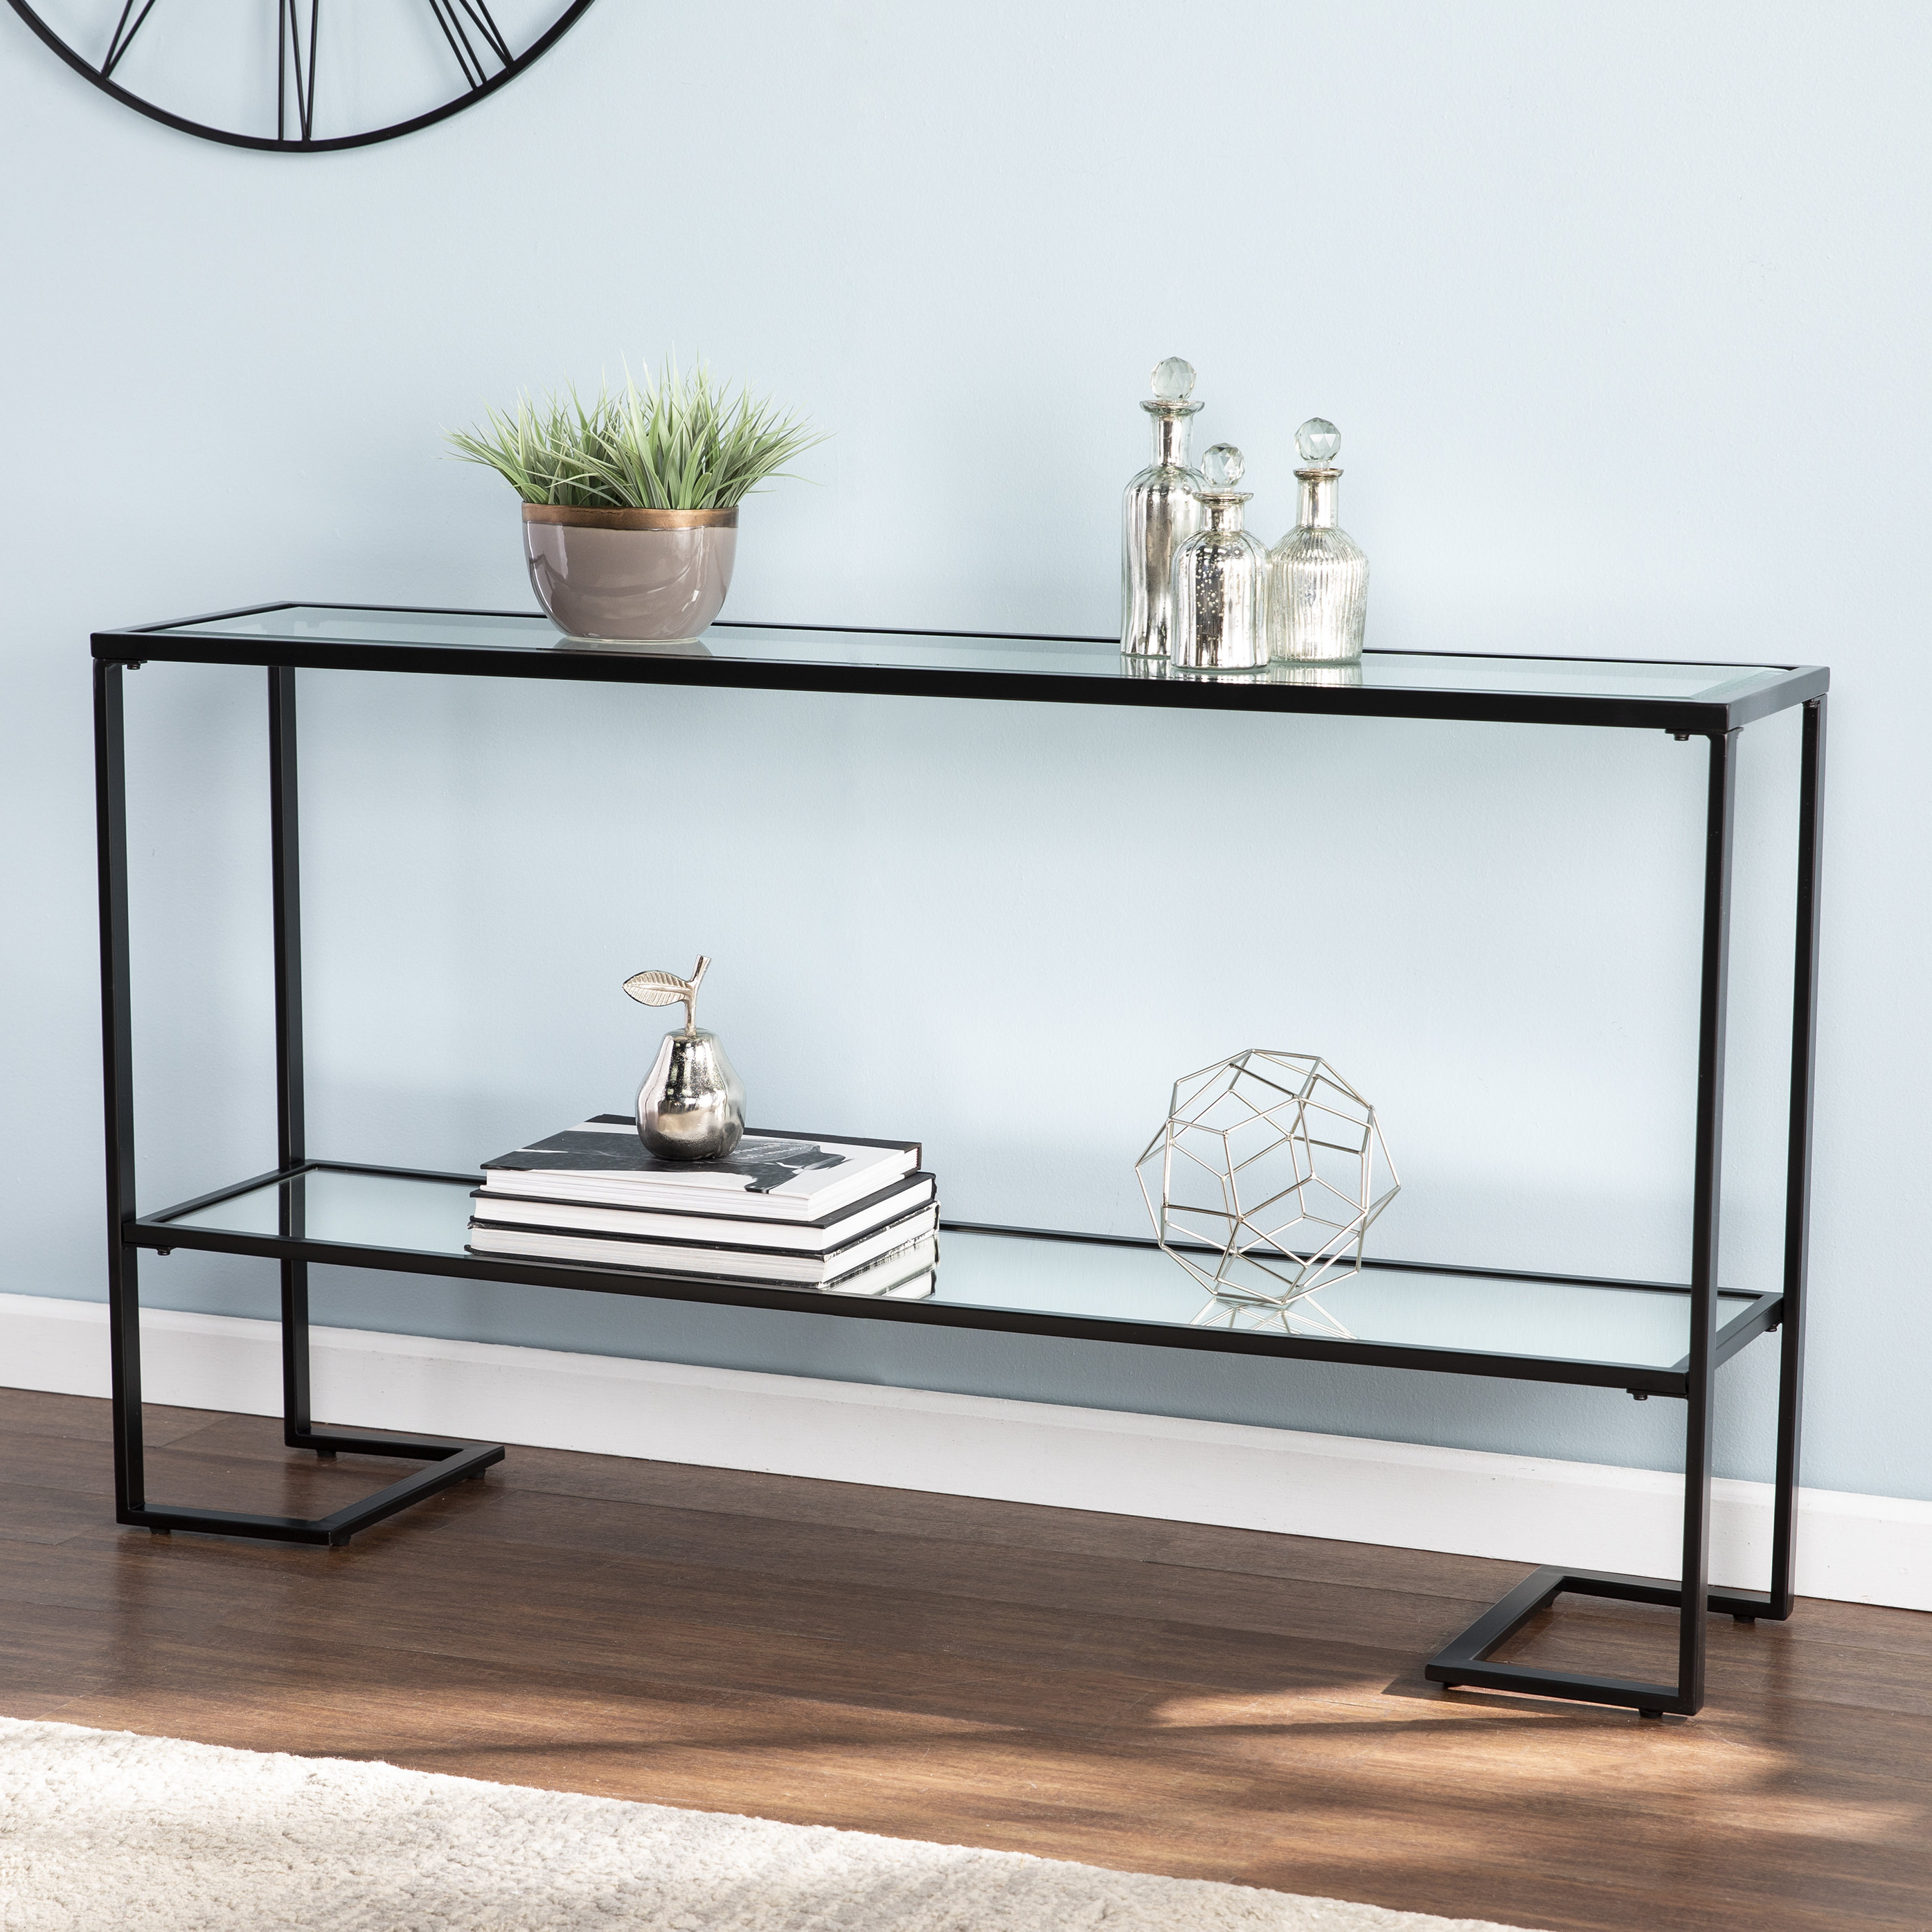 Mercer41 Jai Console Table & Reviews | Wayfair In Phillip Brass Console Tables (View 6 of 20)